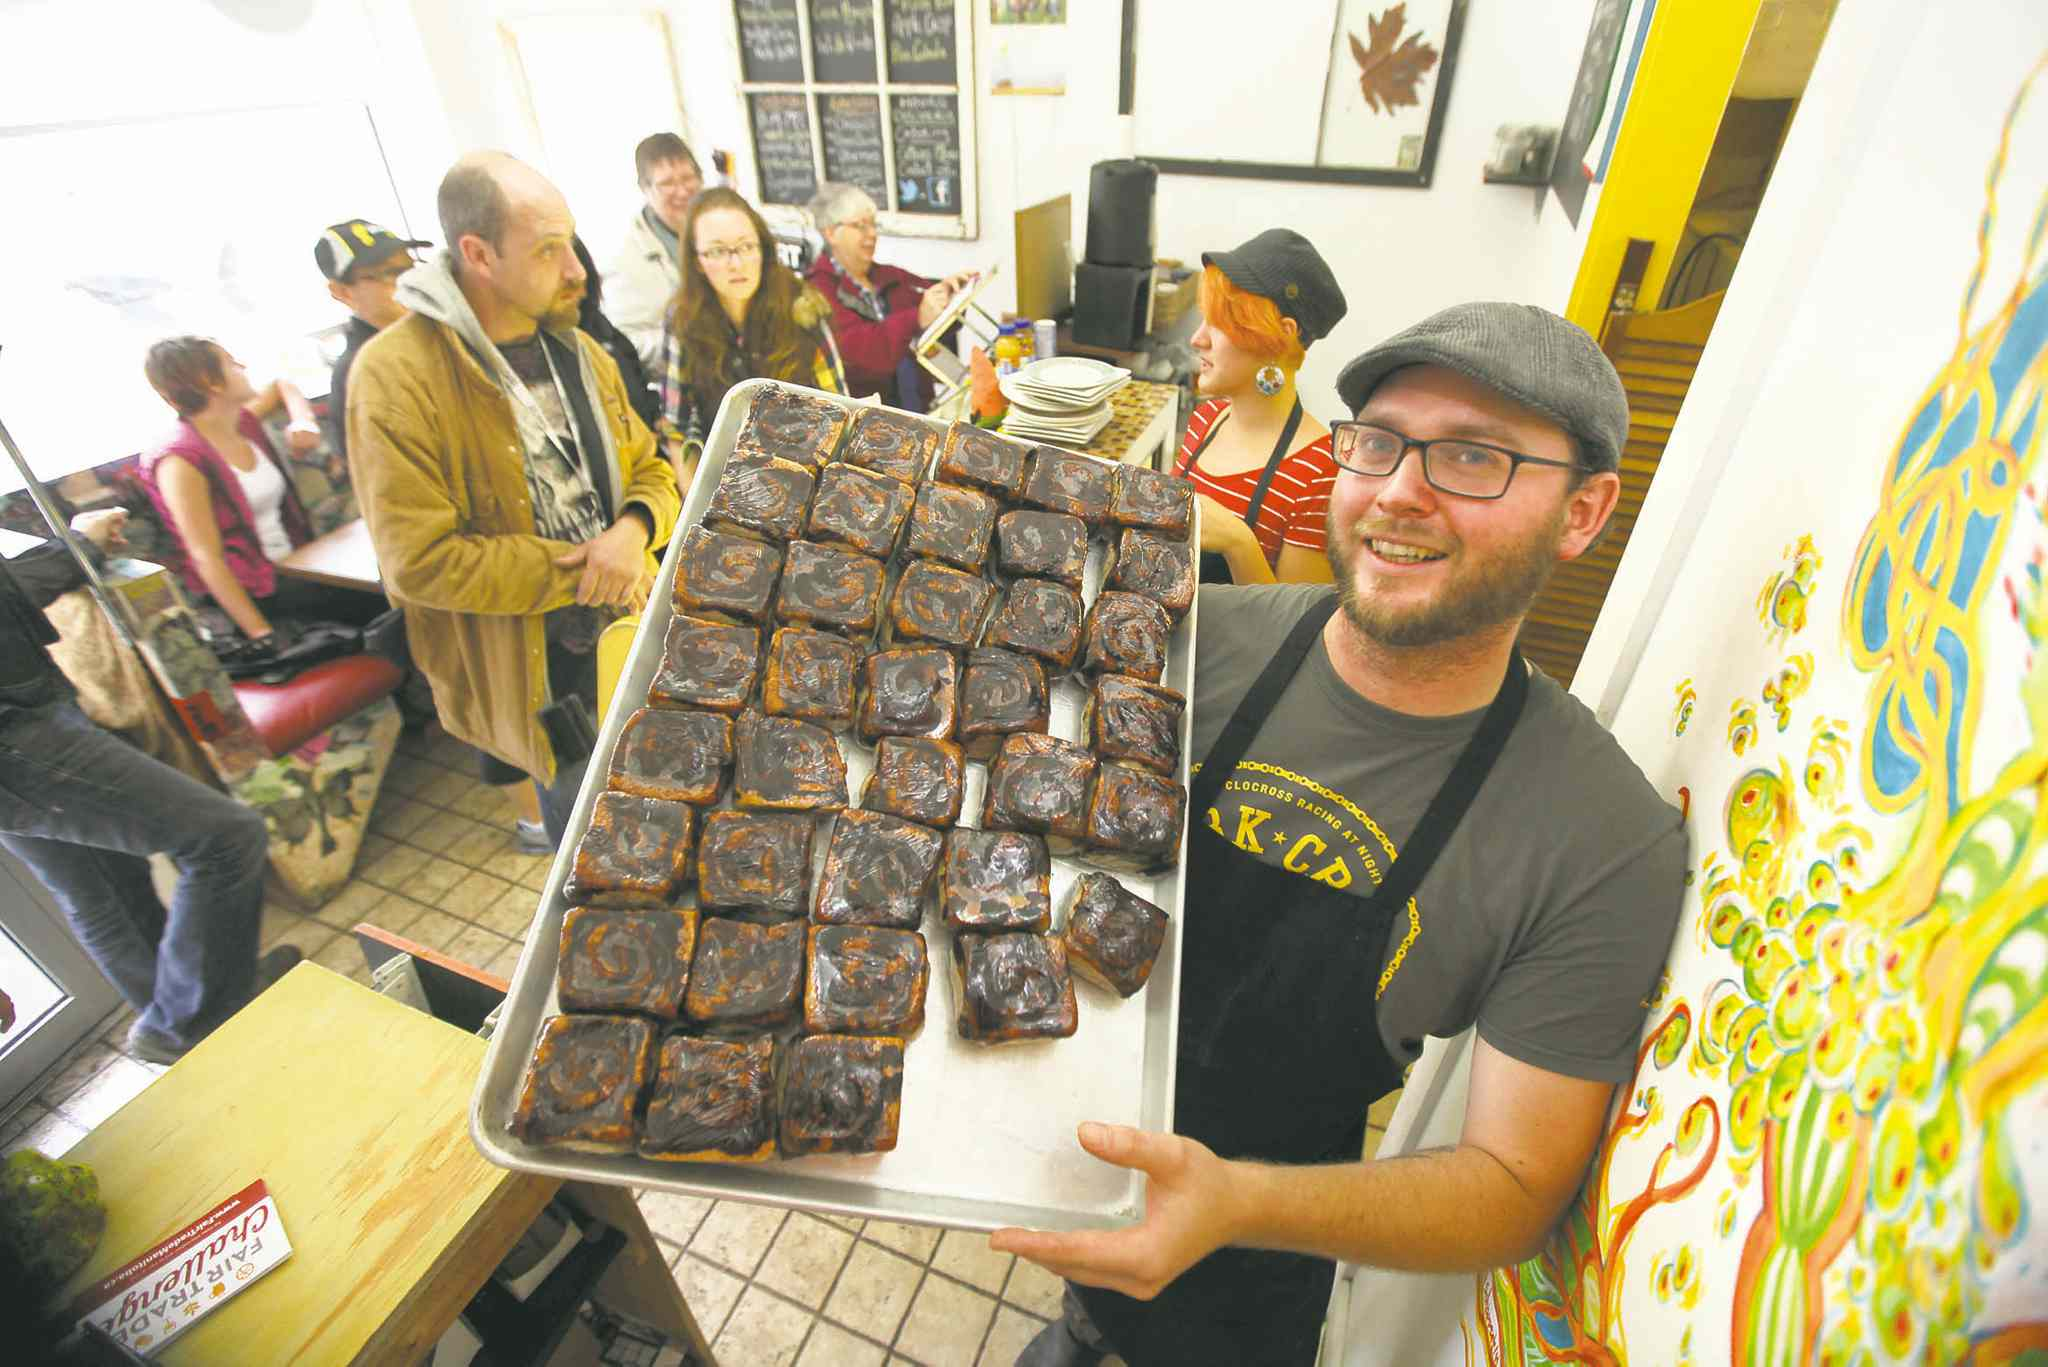 Ruth Bonneville / Winnipeg Free PressJon McPhail of Jonnies Sticky Buns shows his wares during a �carrotmob� celebration Saturday afternoon.